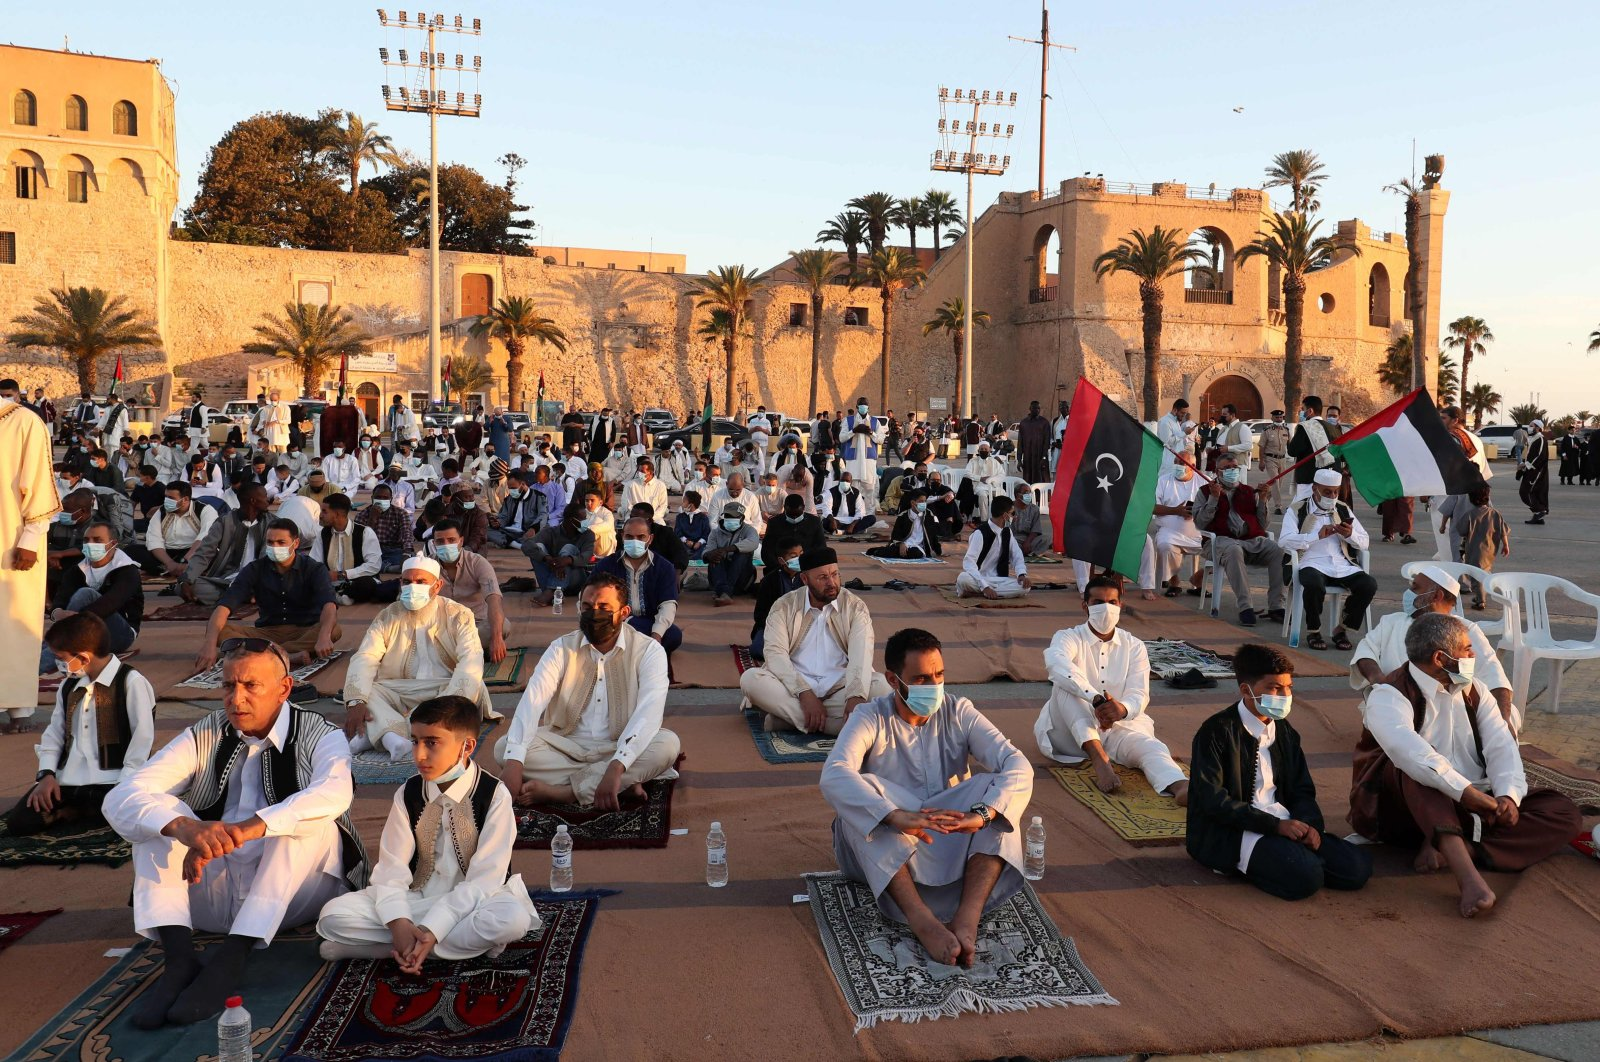 Libyan Muslim worshippers gather to perform the Eid al-Fitr prayers at Martyrs Square marking the end of the holy fasting month of Ramadan, at the capital Tripoli, Libya, May 13, 2021. (Photo by Mahmud Turkia via AFP)